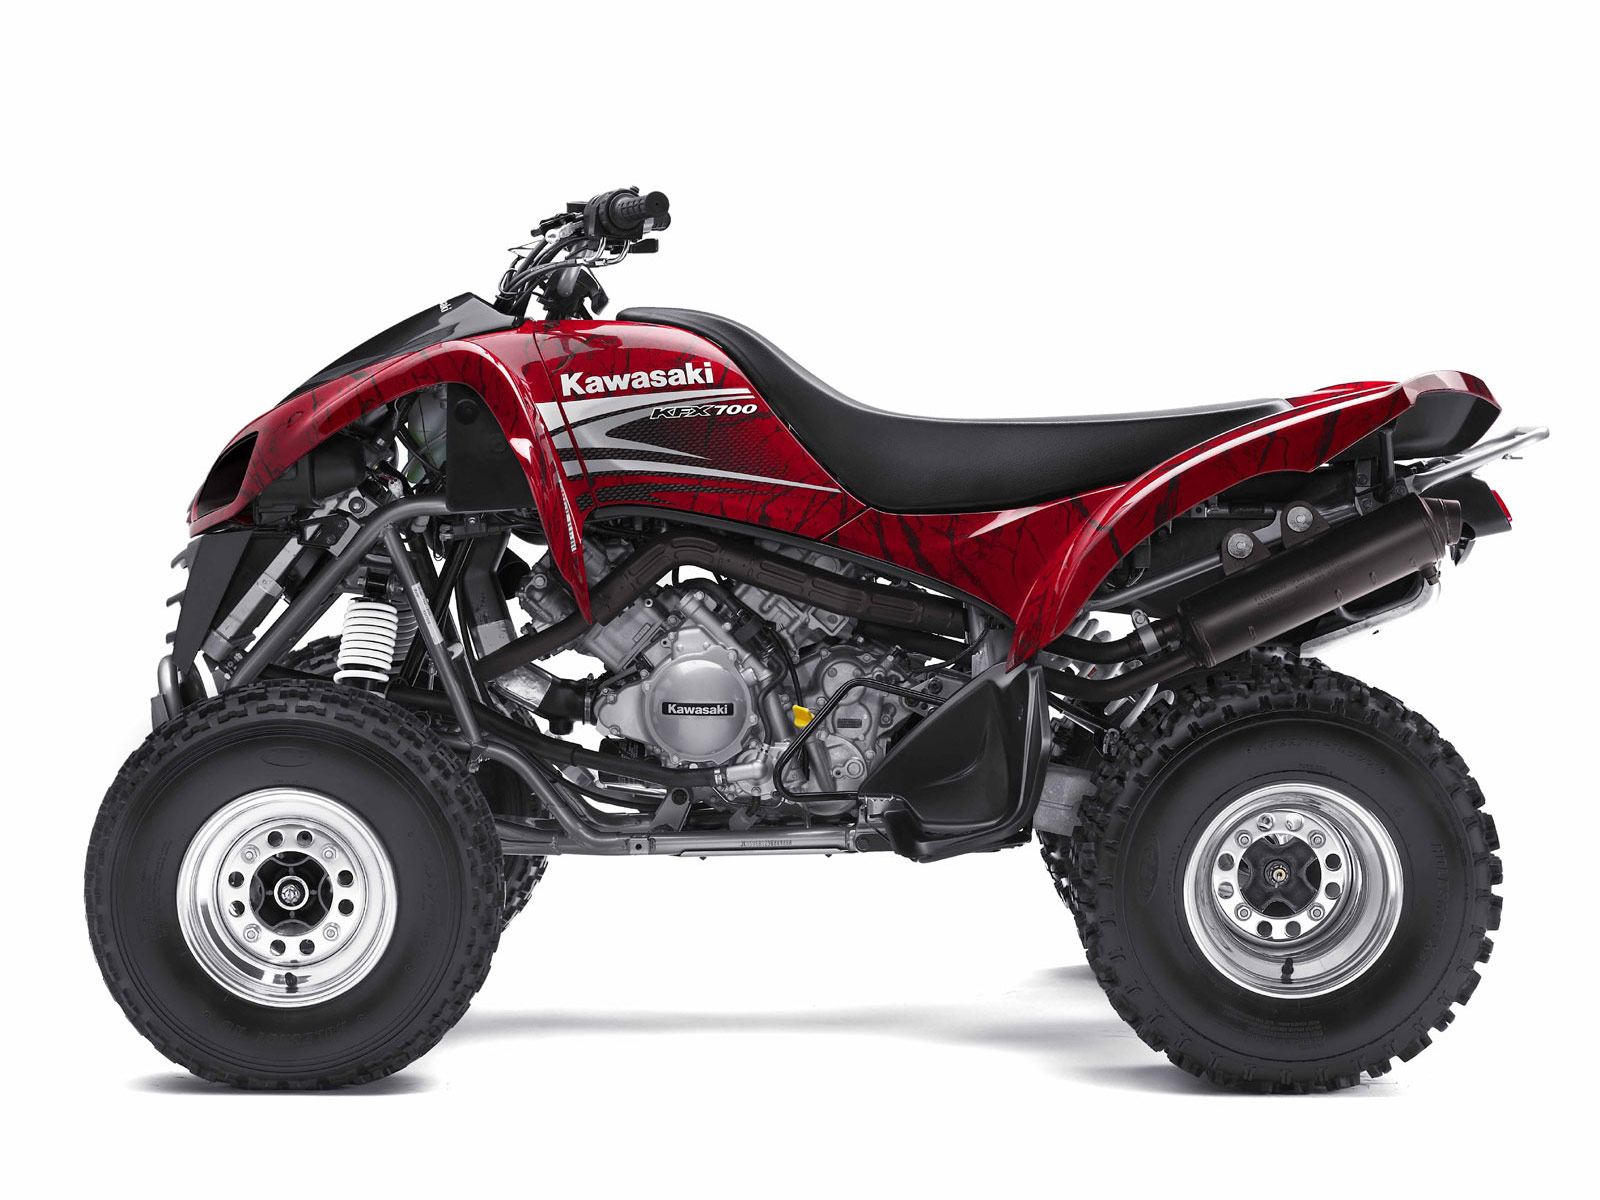 2009 kawasaki kfx 700 pictures specs accident lawyers info. Black Bedroom Furniture Sets. Home Design Ideas